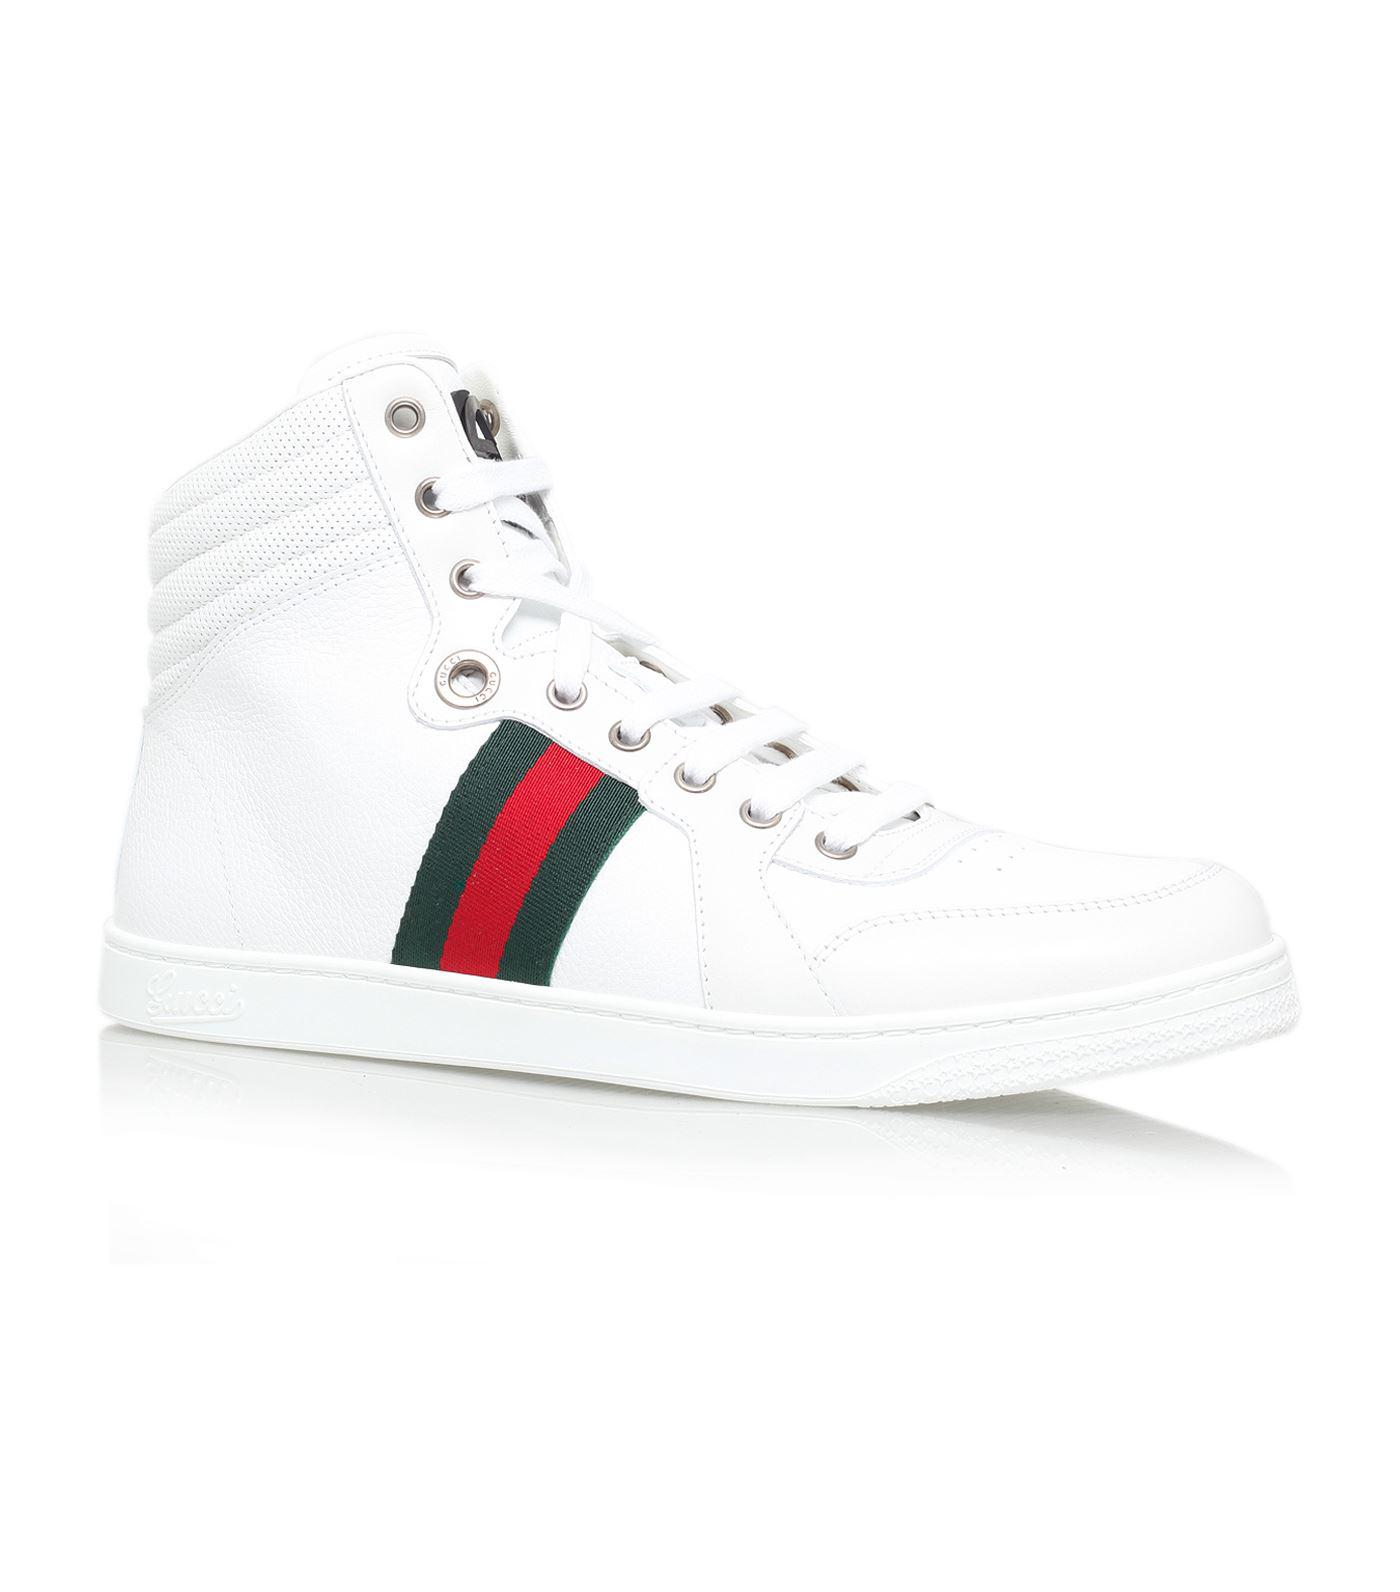 fb3c543a5 Gucci Coda High-top Sneaker in White for Men - Lyst